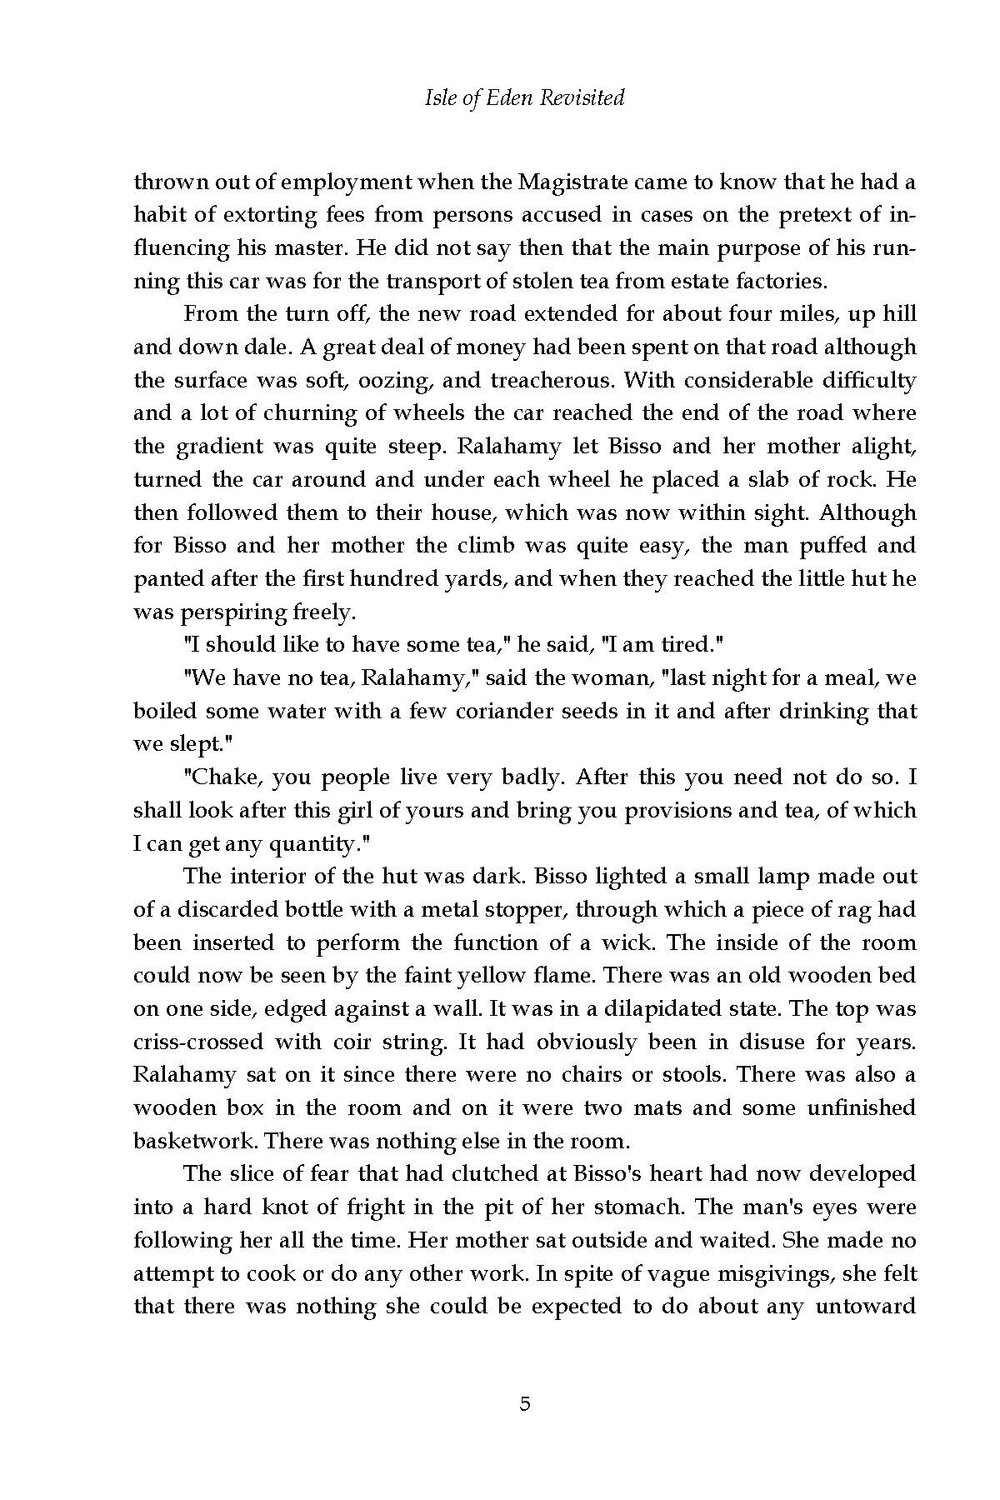 jgre050217 (final text)_Page_07.jpg